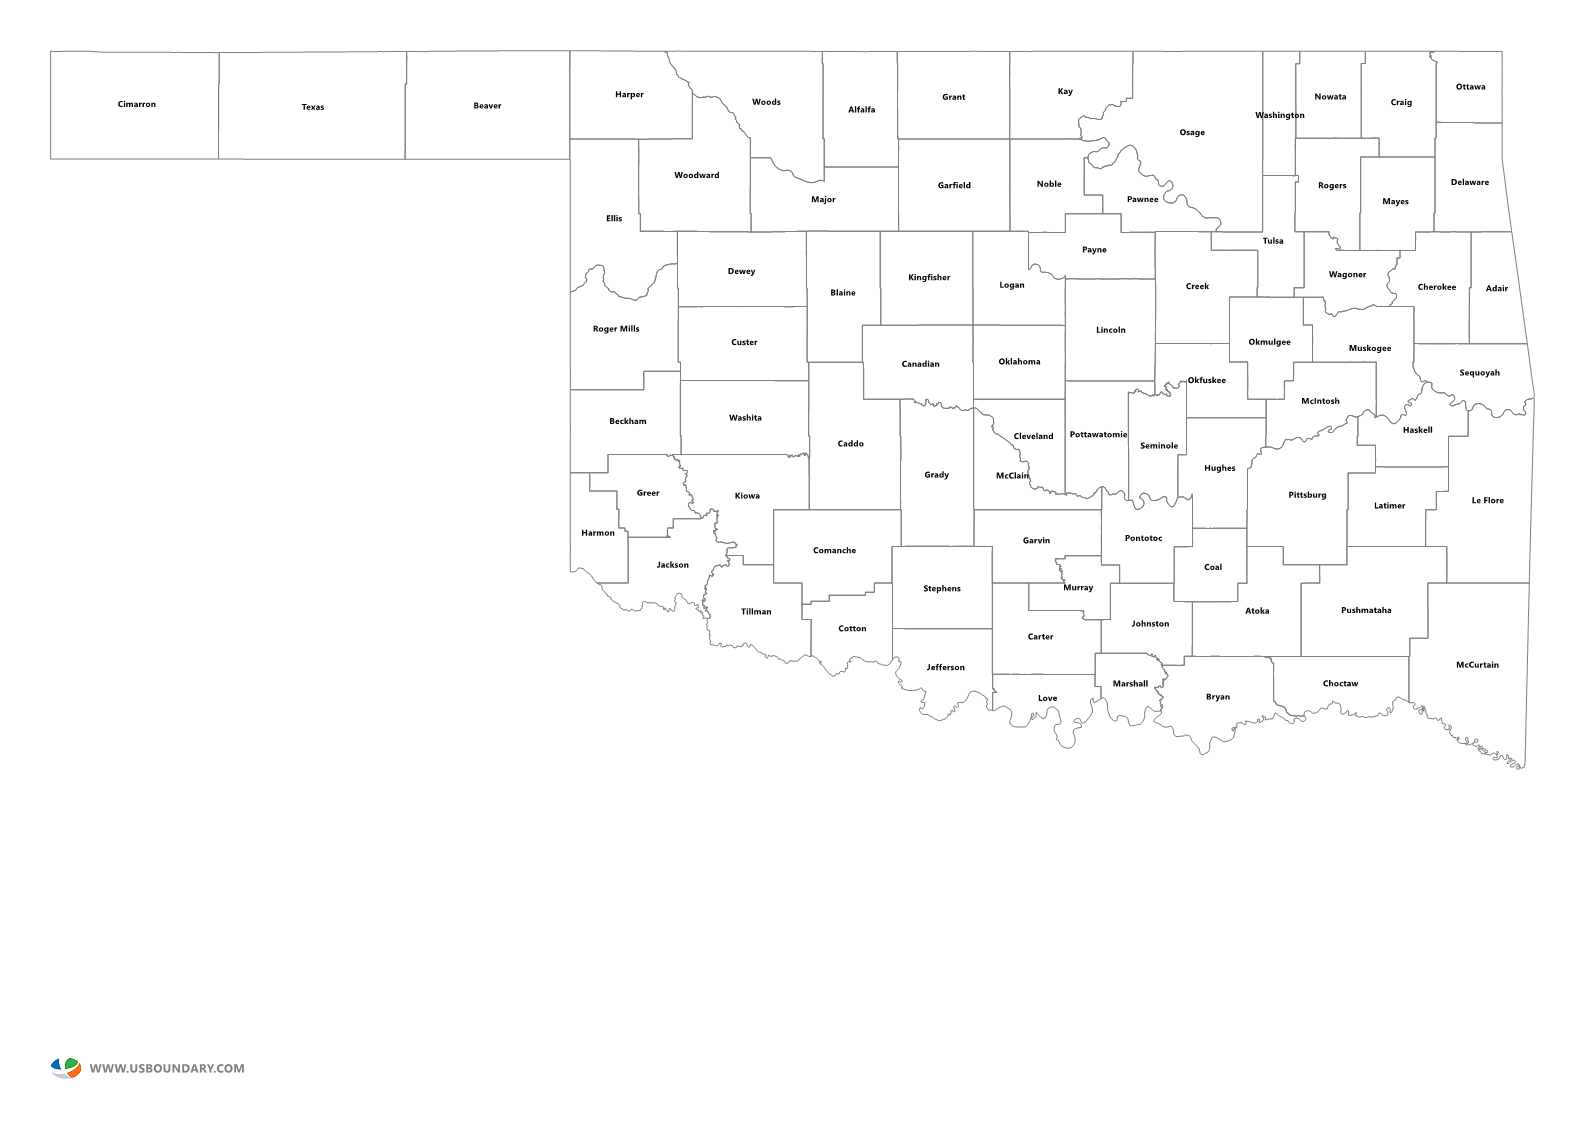 State Counties Maps Download - Oklahoma county map